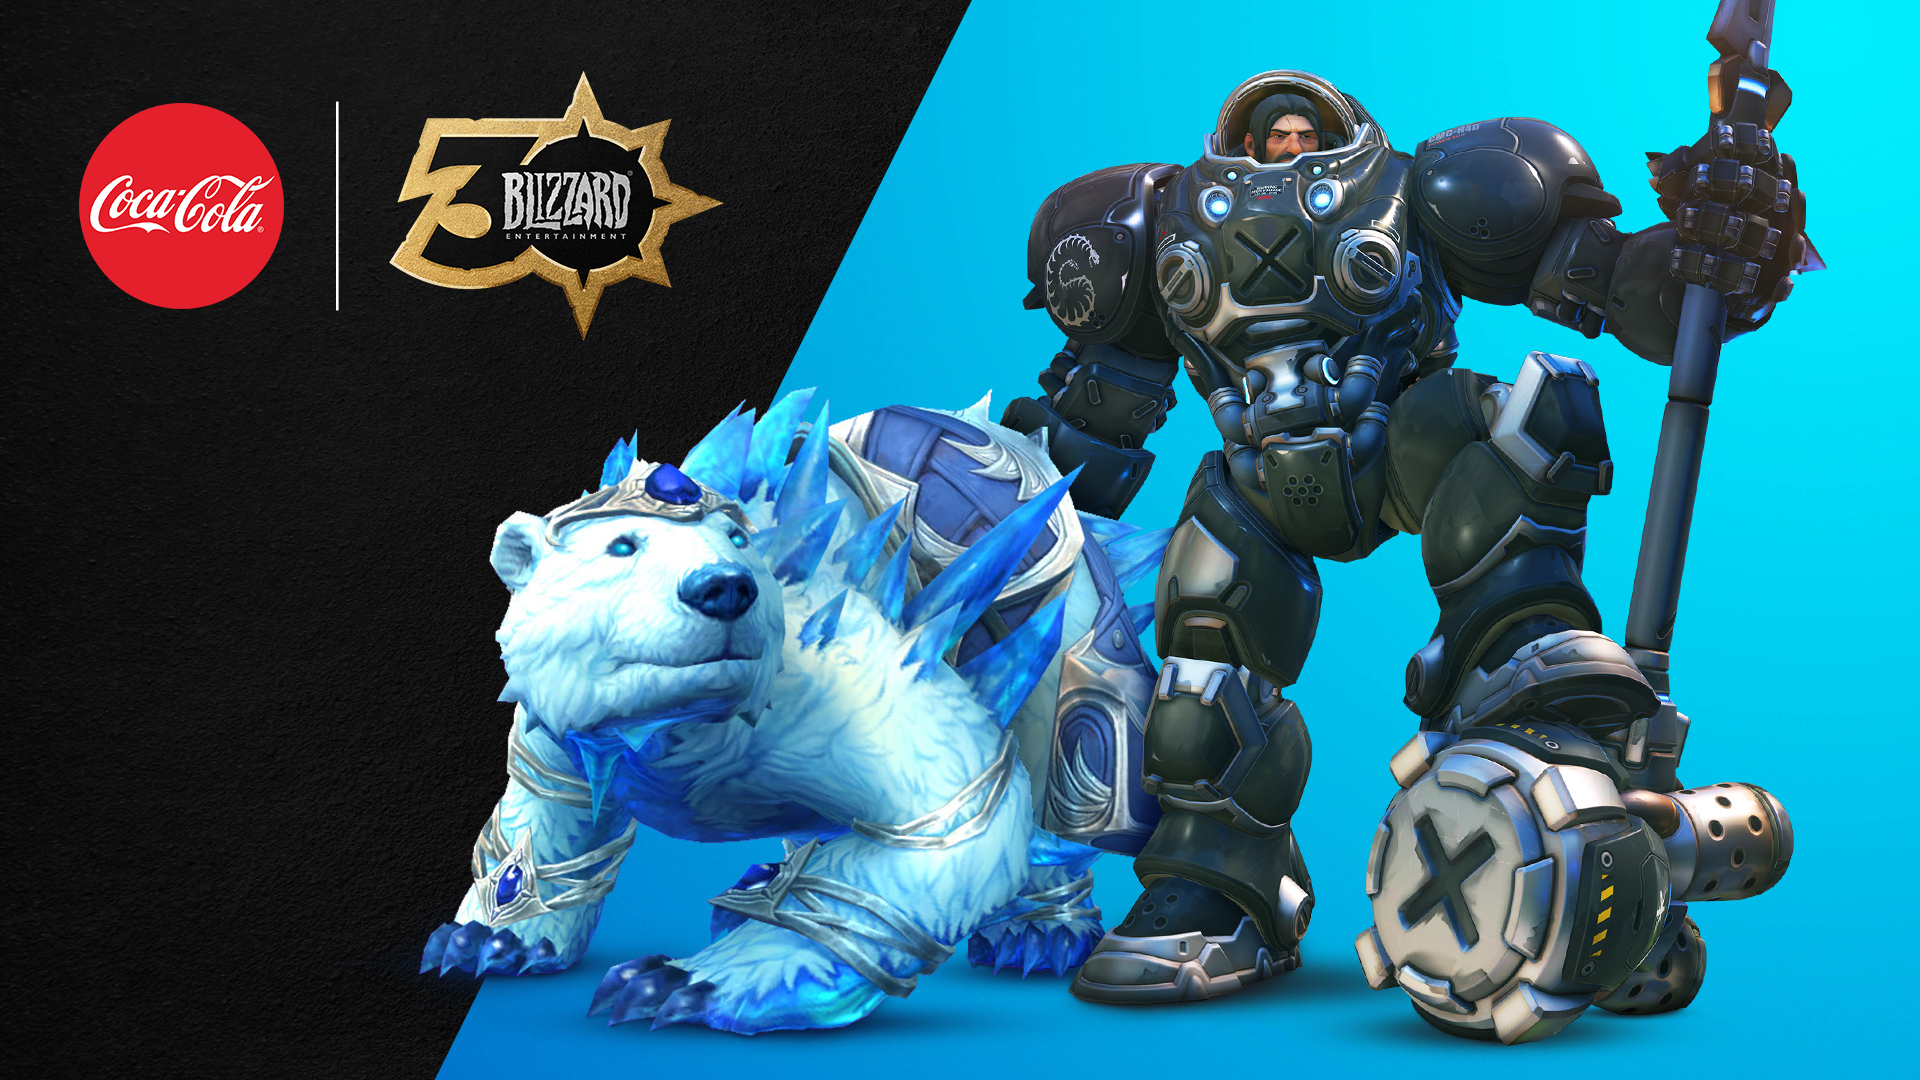 Coca-Cola logo and Blizzard Entertainment 30th logo with BlizzConline Scavenger hunt prize, the Celebration Collection